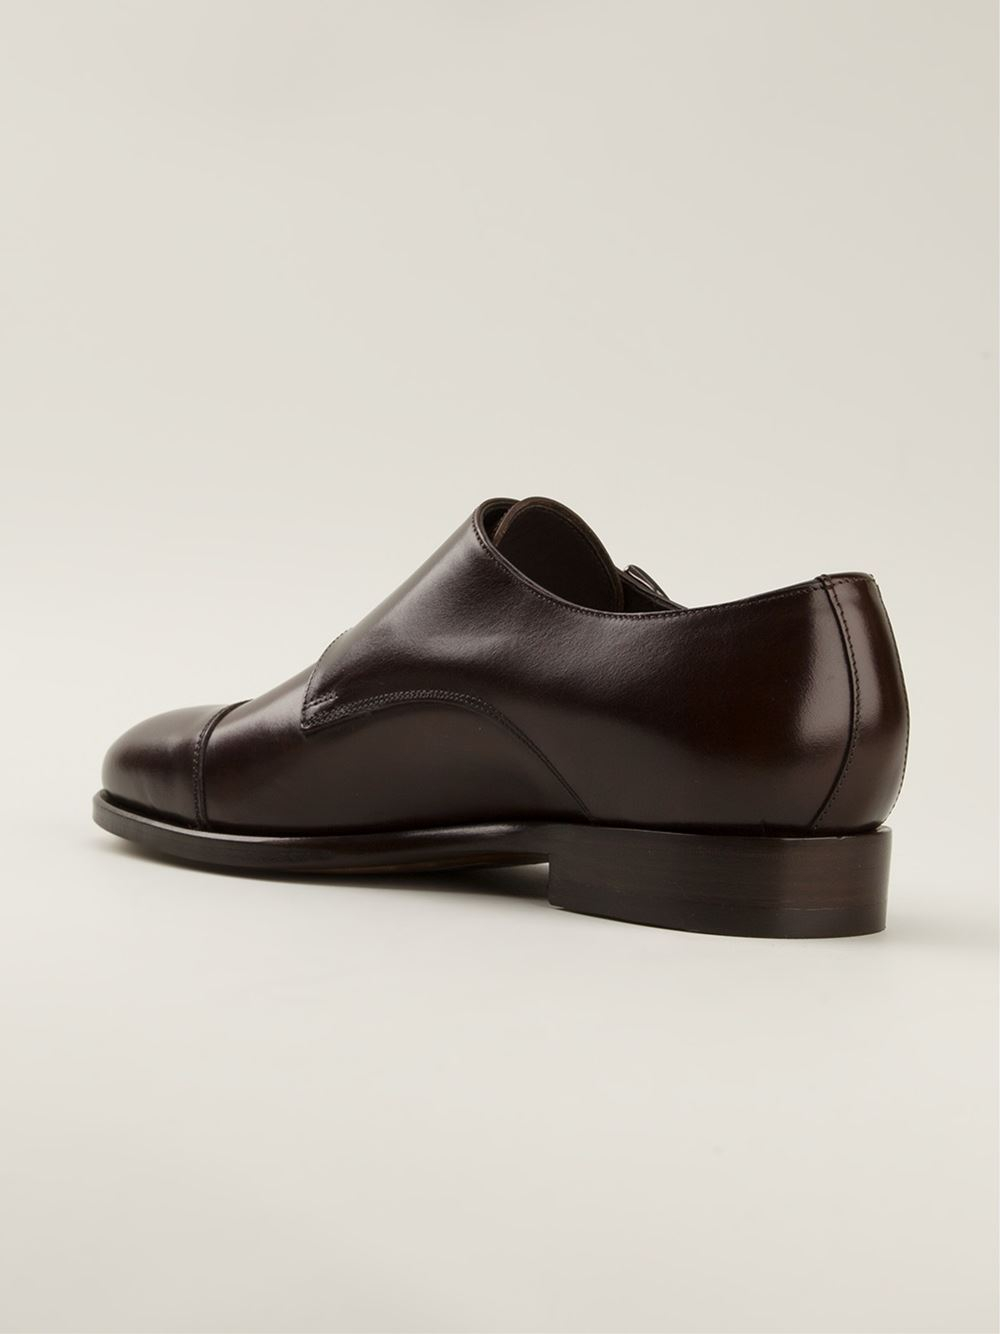 Lyst Canali Classic Two Buckles Monk Shoes In Brown For Men